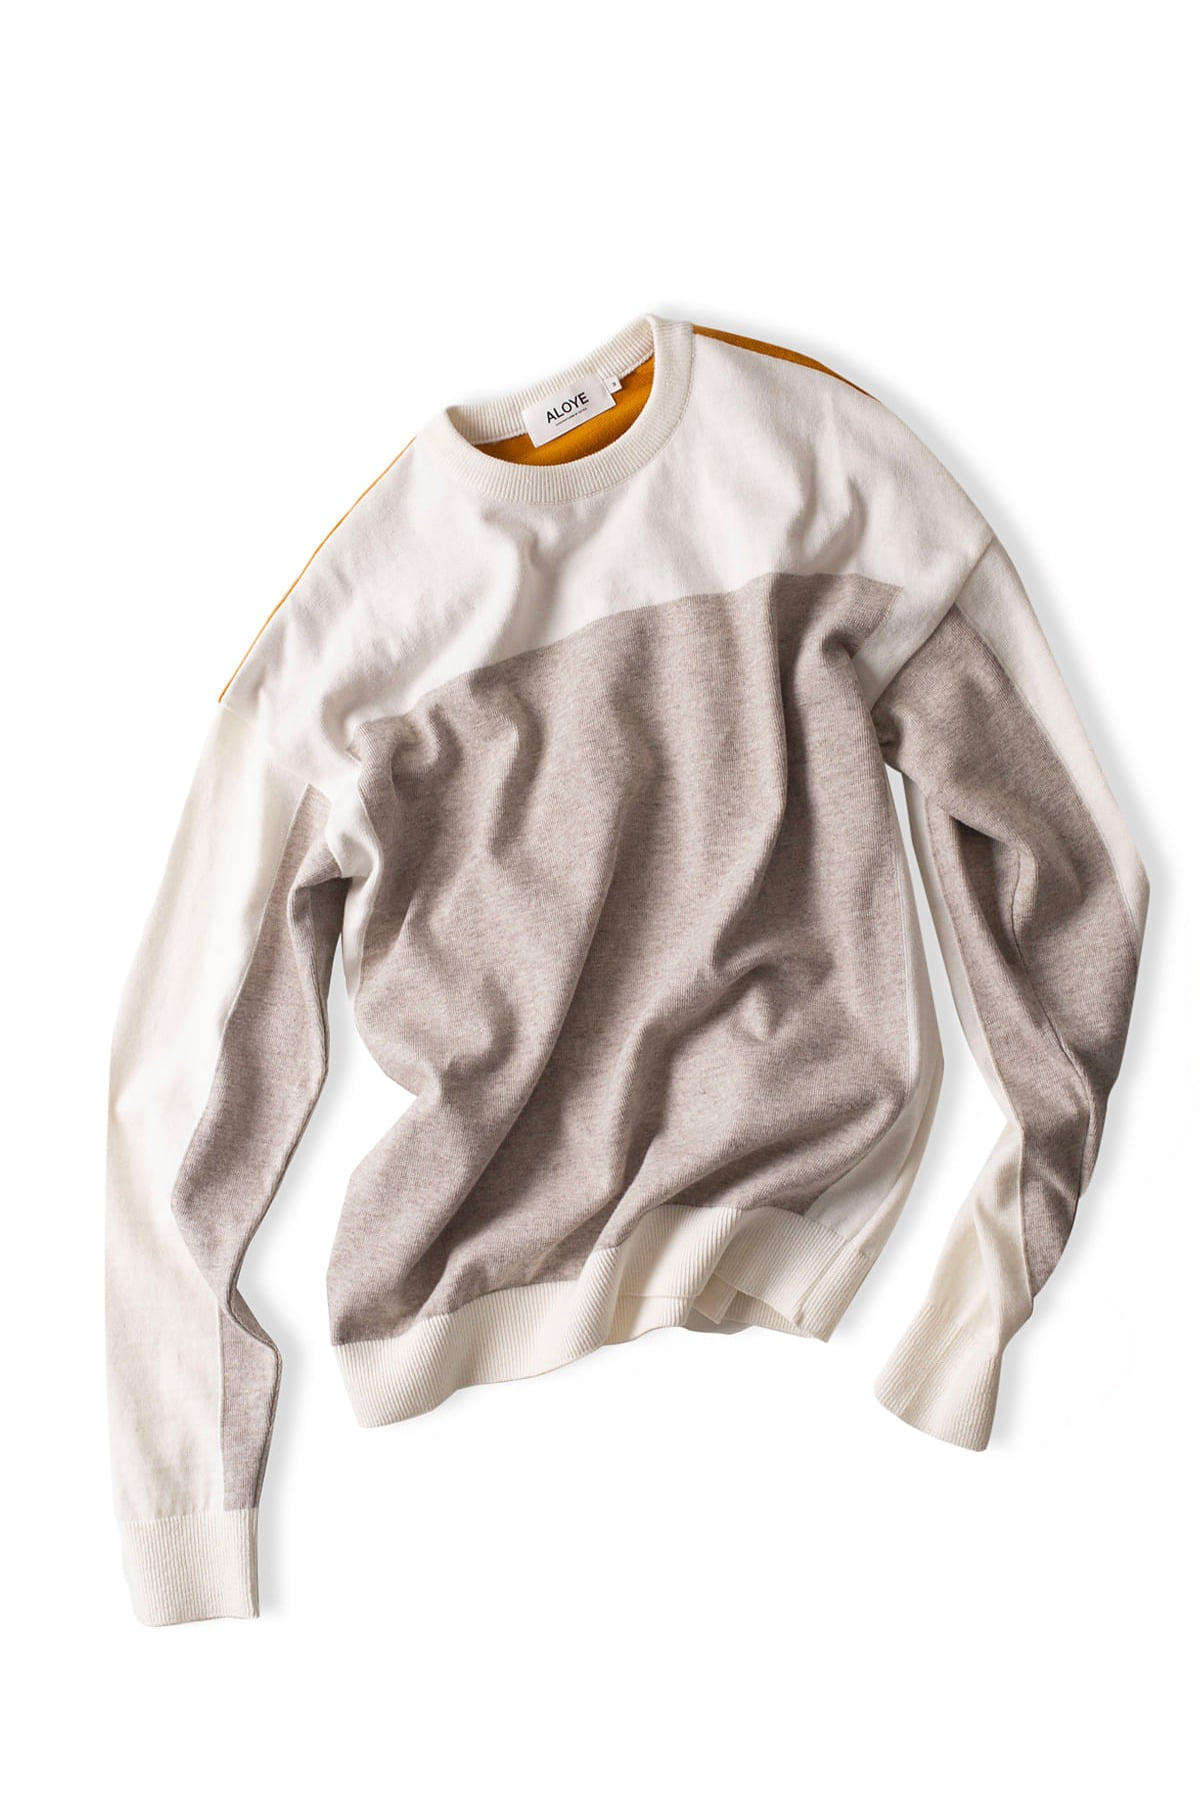 ALOYE : G.F.G.S Long Sleeve Cotton Knitted (White / Gray)